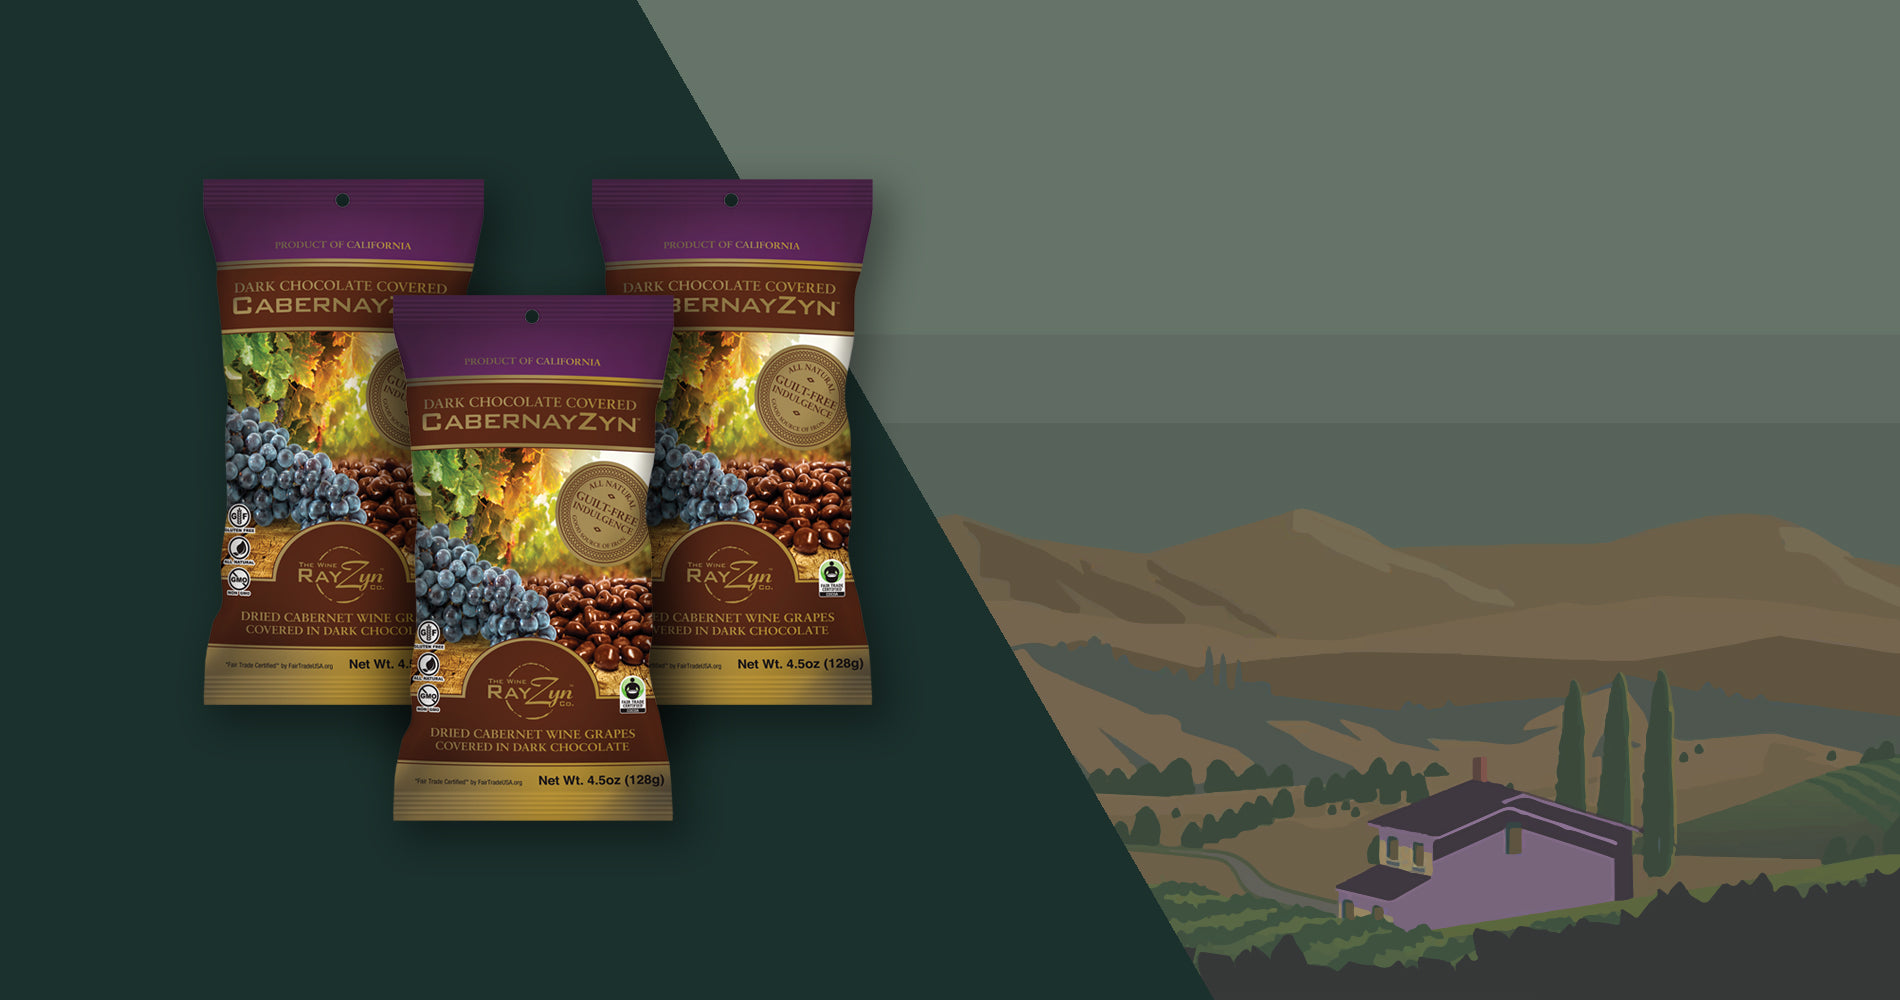 The Wine RayZyn™ Company - Guilt Free Indulgence Snacks